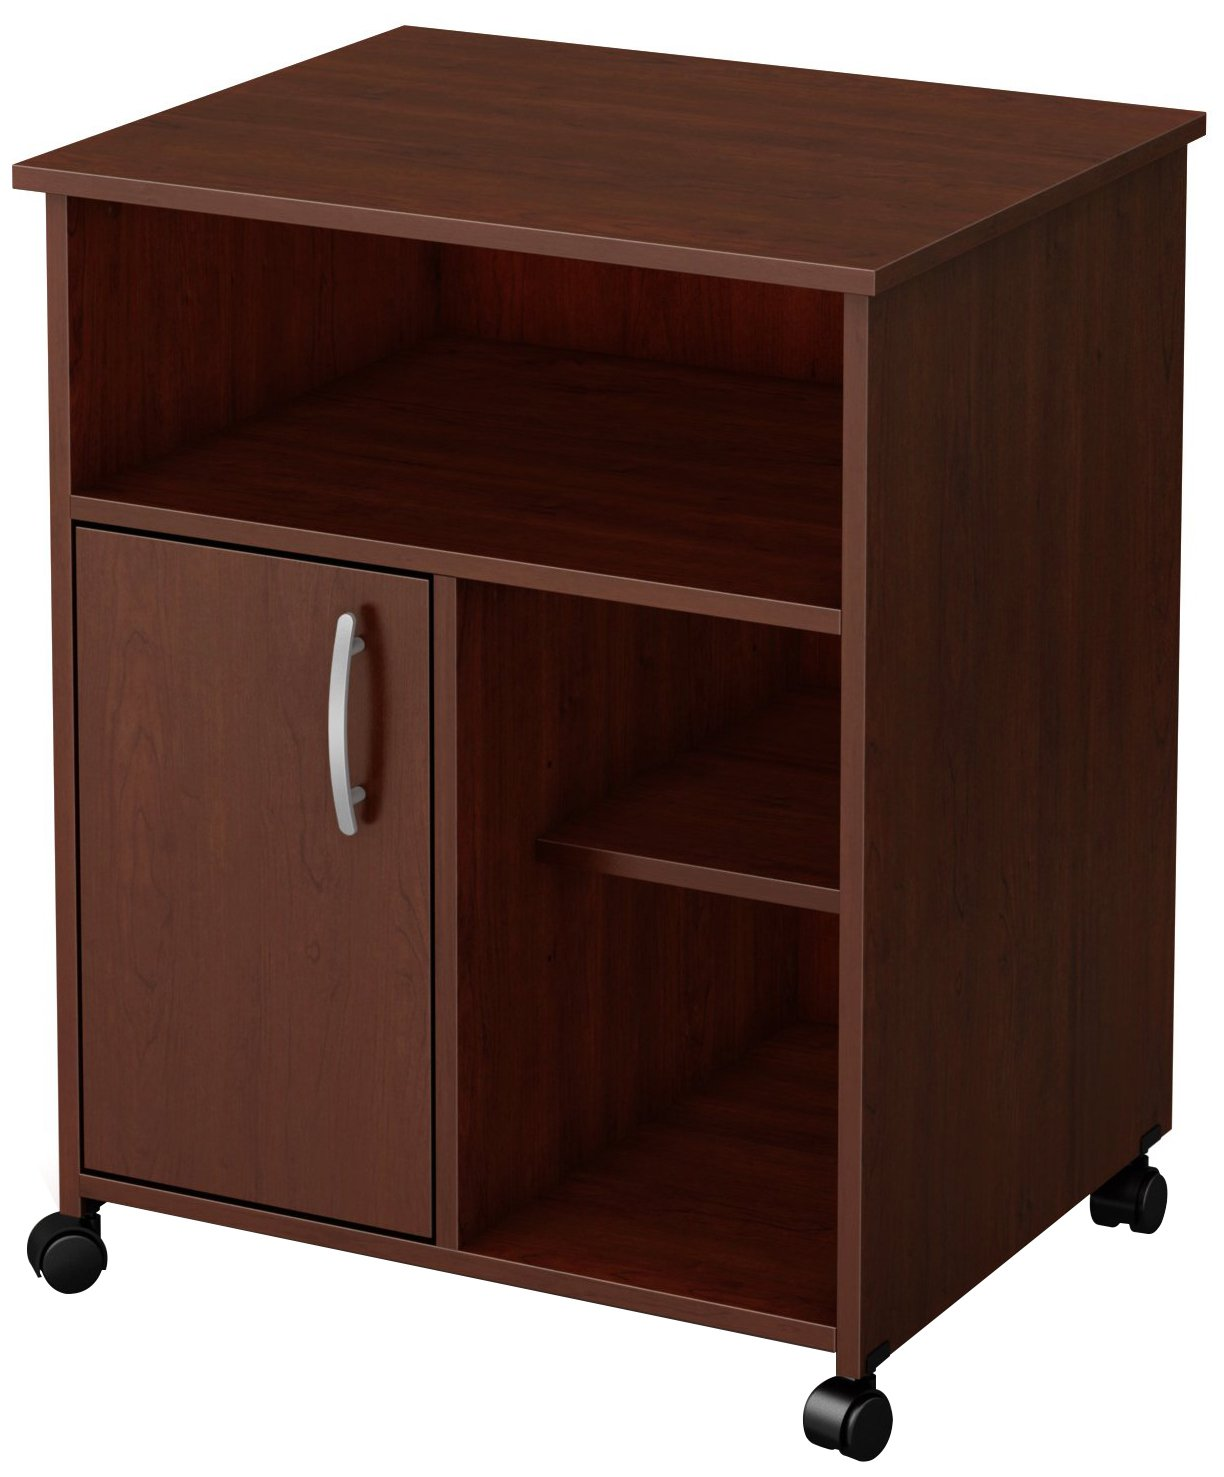 South Shore Fiesta Microwave Cart with Storage on Wheels, Royal Cherry South Shore Furniture 7246B1